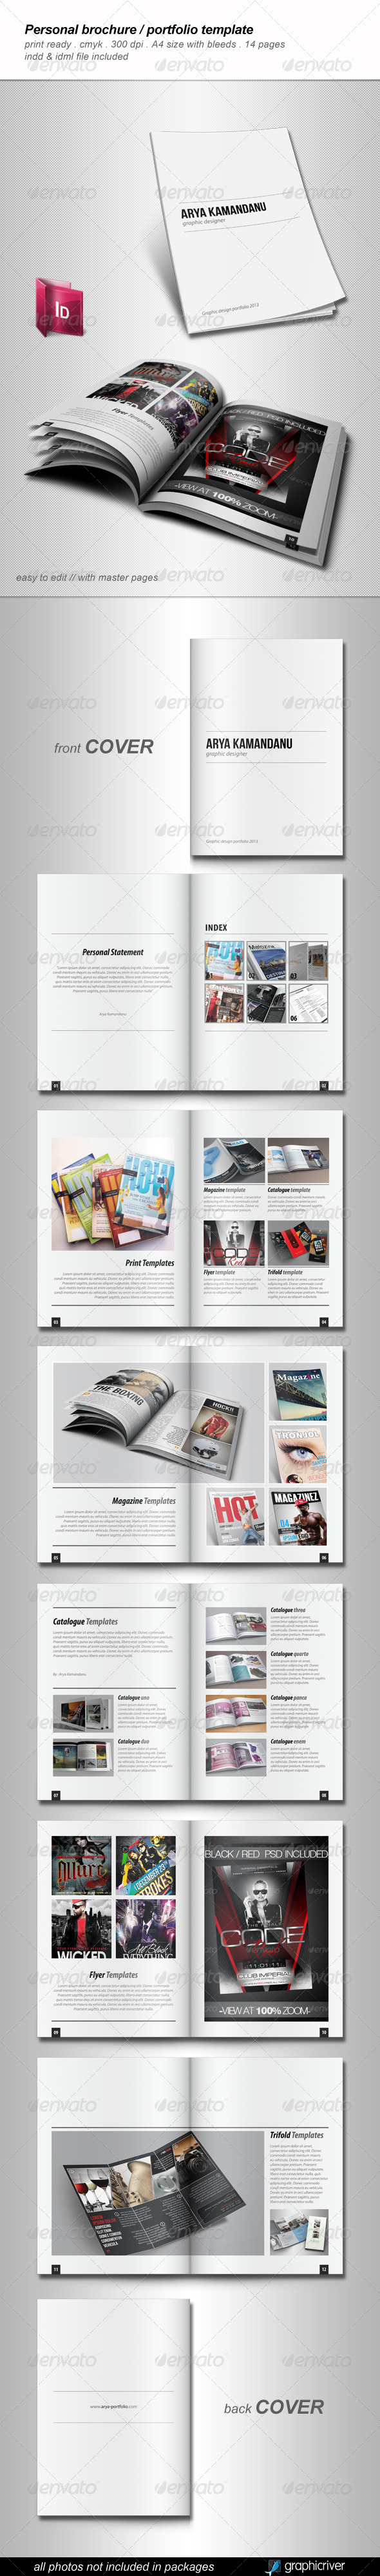 personal brochure templates - indesign a3 portfolio template